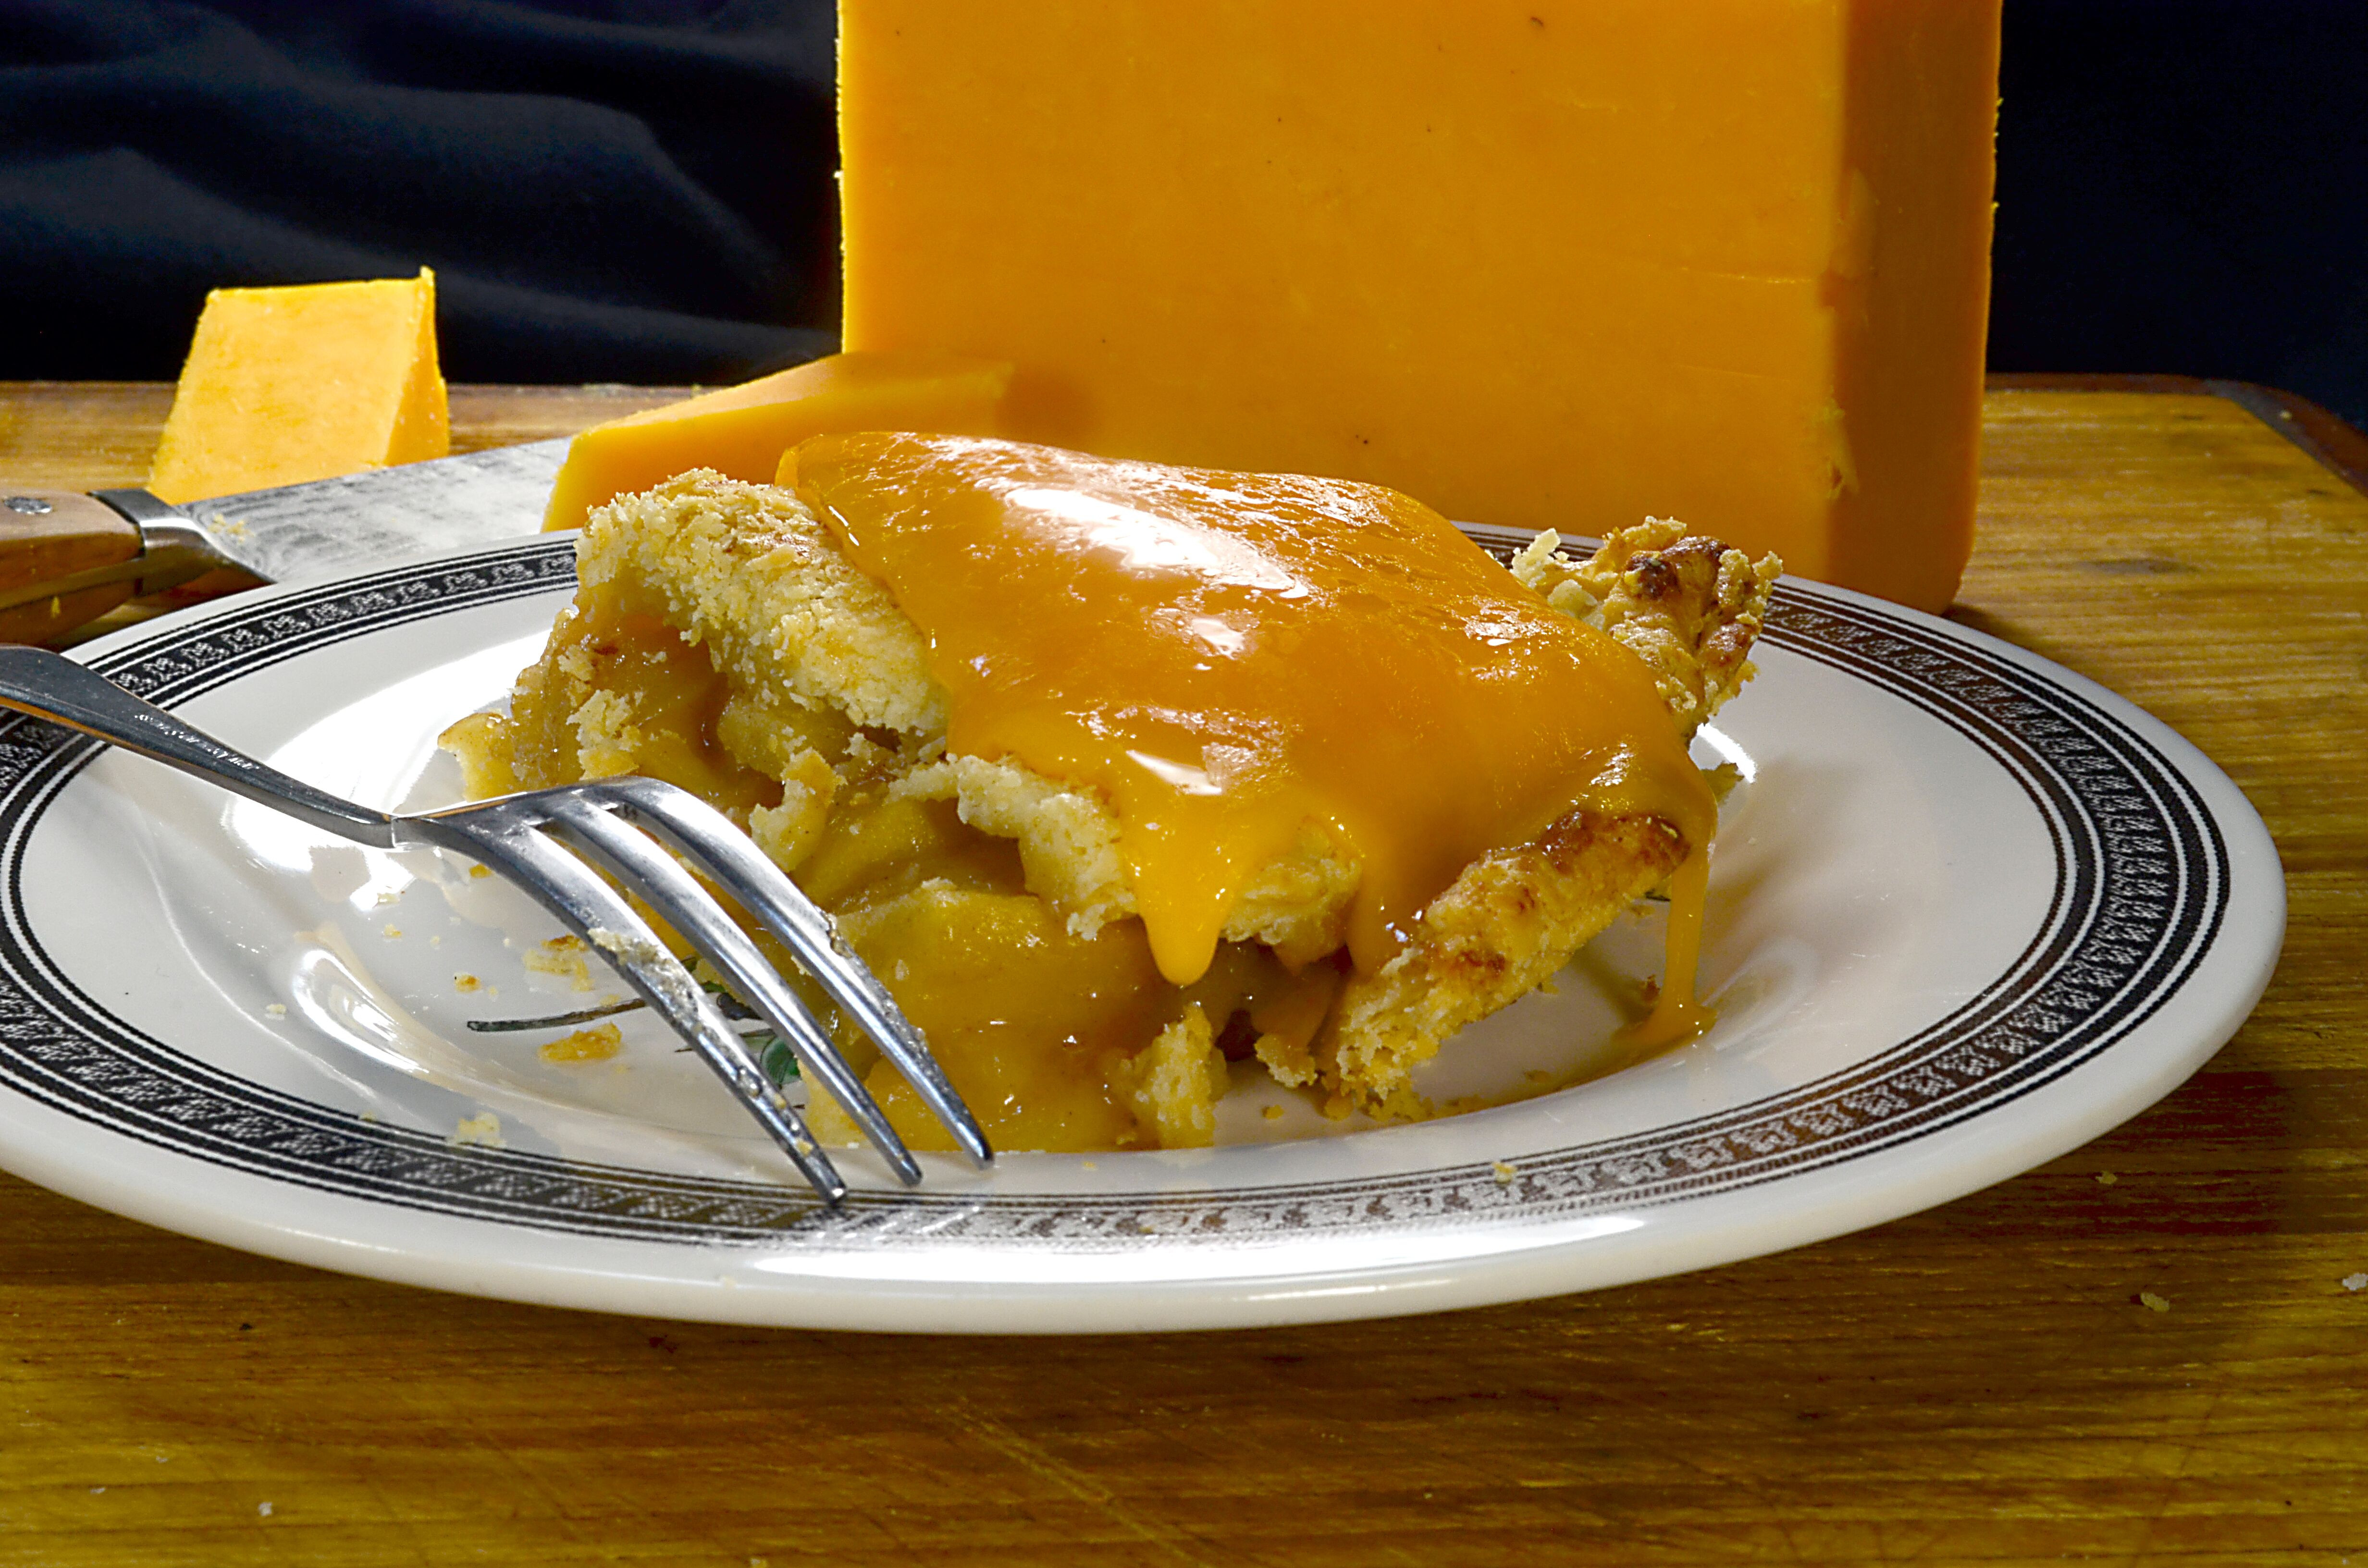 Apple Pie With Cheese  Pie with cheese Ancient pairing tradition or an a la mode